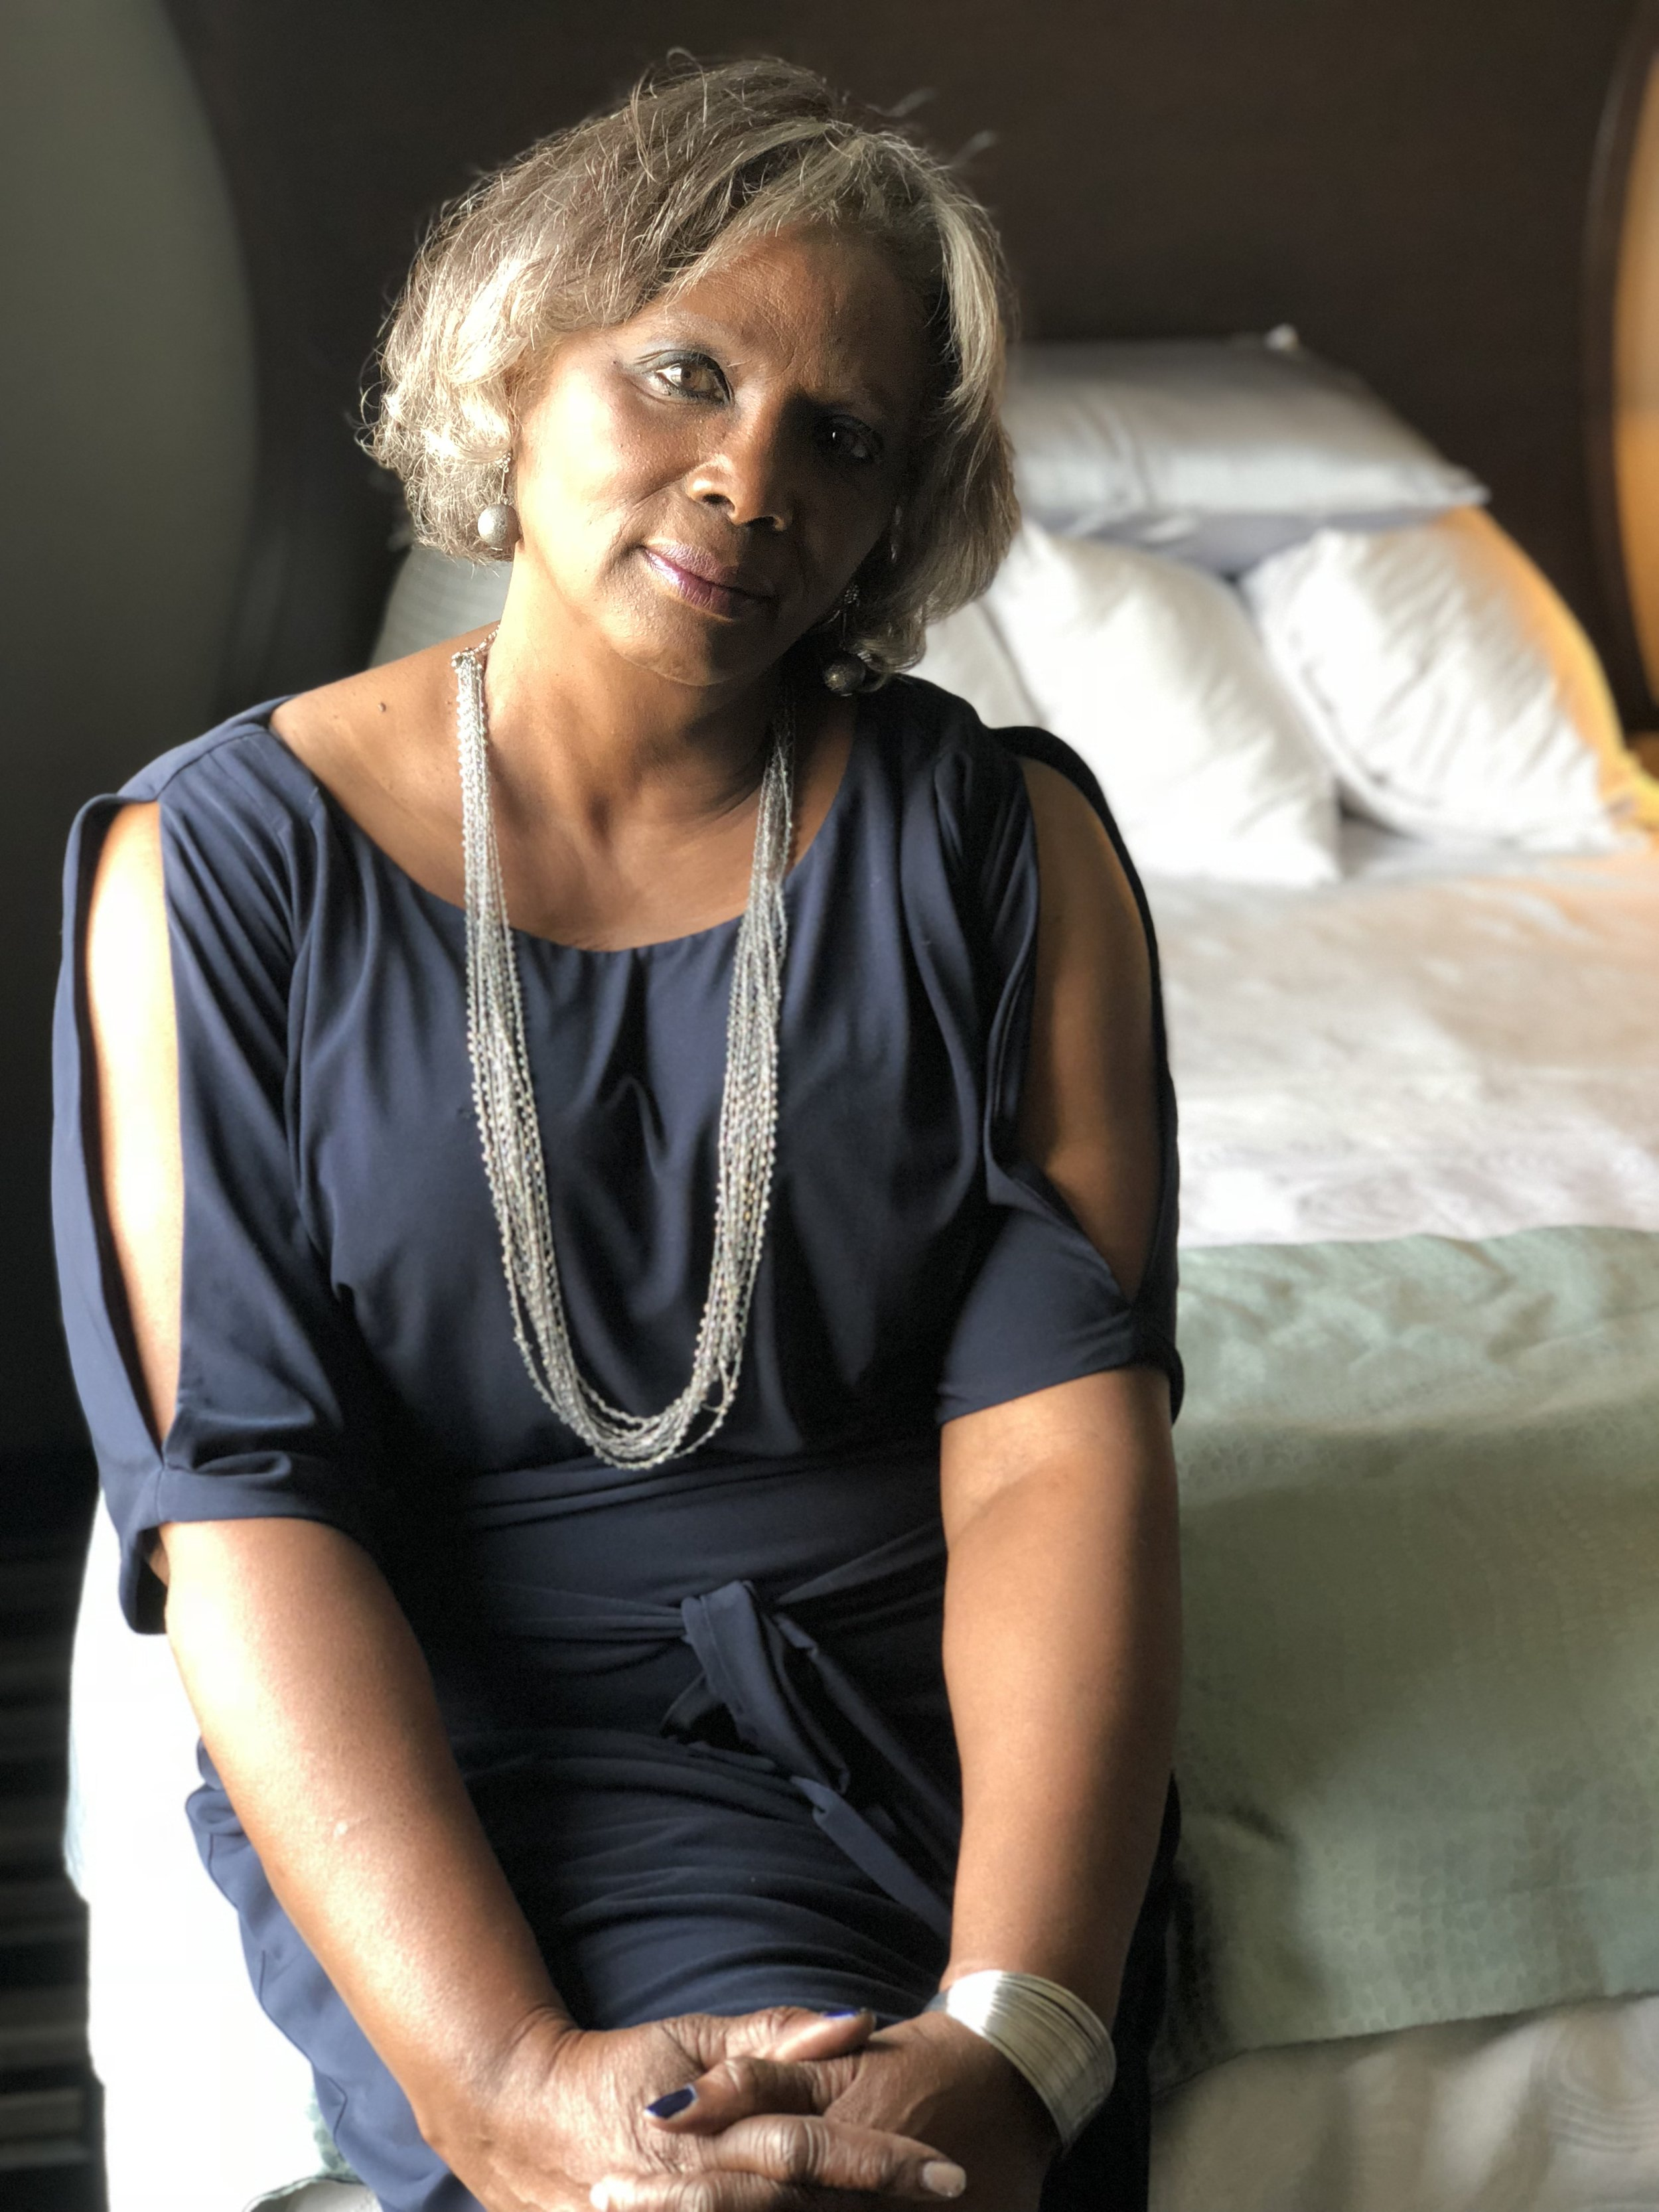 My beautiful mama. She's my main source of love, encouragement, and inspiration. At 66 years old she is proof that you don't get old...you get better.